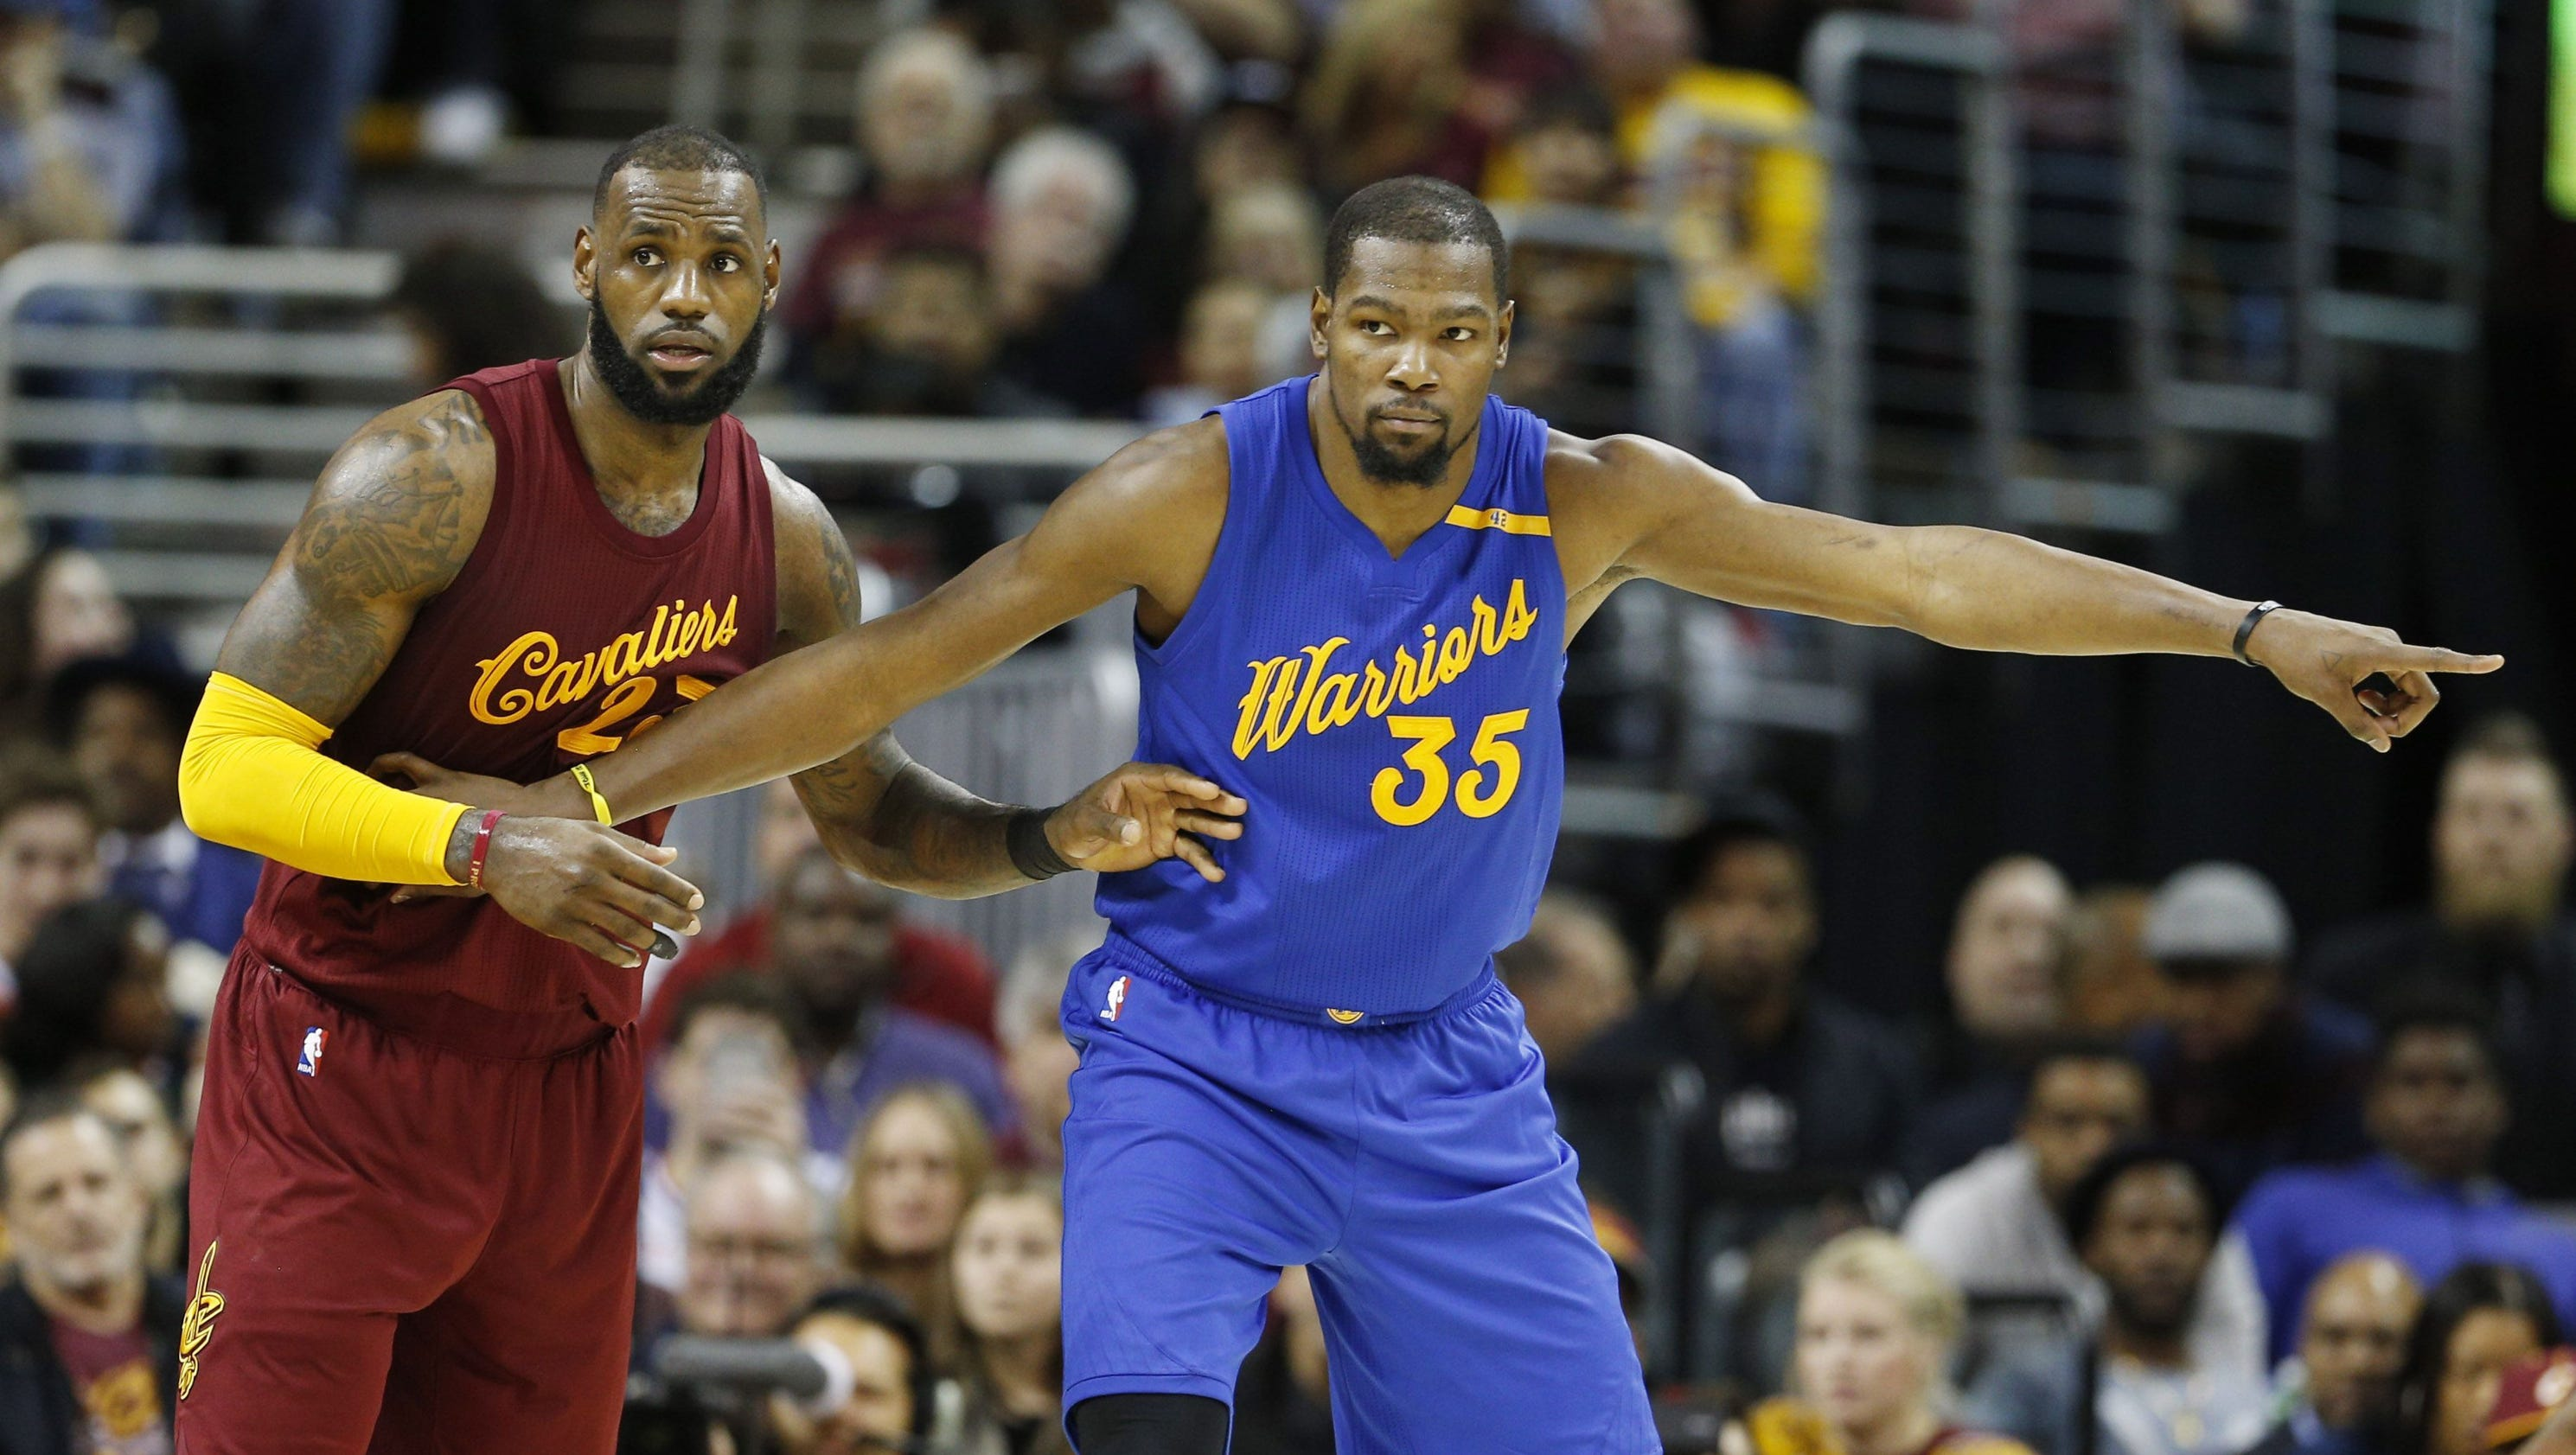 636313309612805866-usp-nba-golden-state-warriors-at-cleveland-cavali-87576060-1-